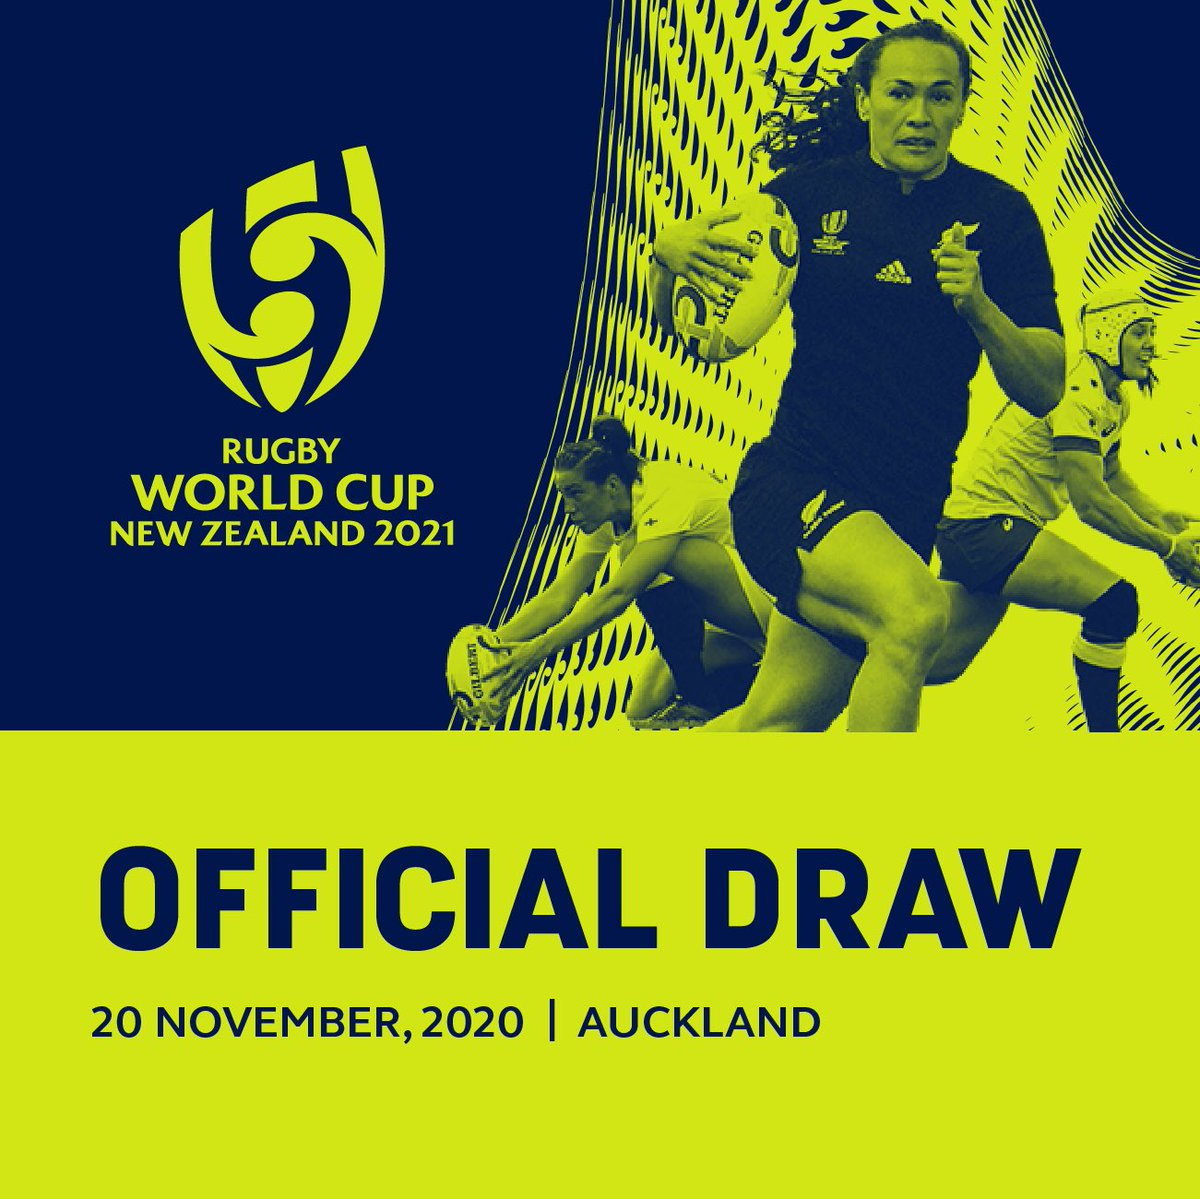 test Twitter Media - ➡️ Rugby World Cup 2021 Draw confirmed for 20 November 2020  ➡️Draw event to be held at SkyCity Theatre in the heart of Auckland  ➡️ RWC 2021 Draw to be live streamed to global audiences via World Rugby digital channels  More here: https://t.co/WmCo0VHb2v https://t.co/ec9LD8EAgA